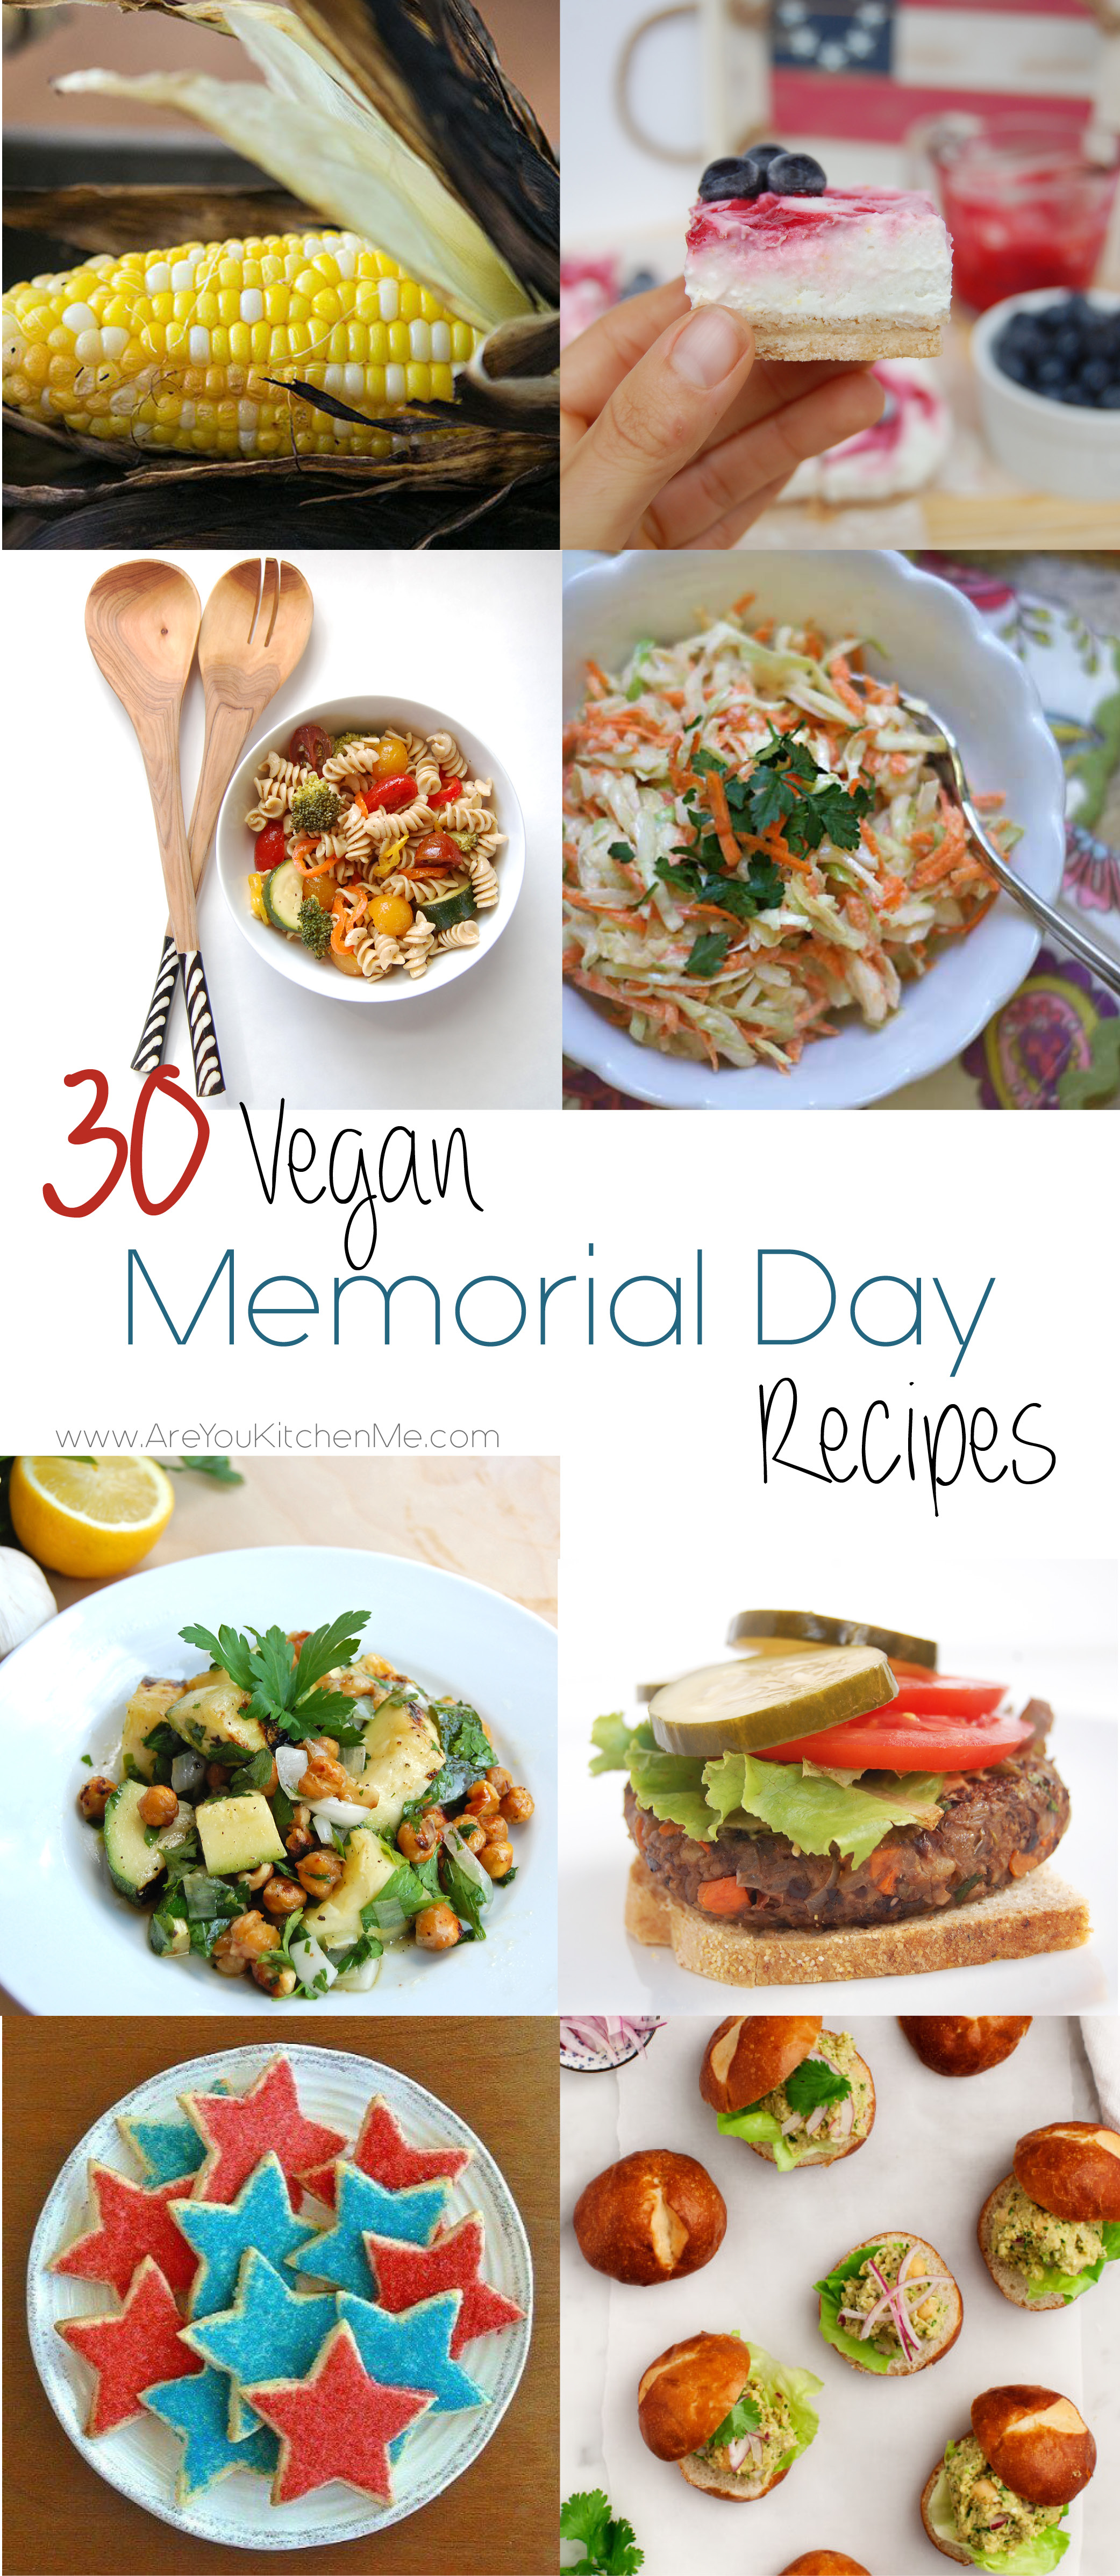 30 Vegan Memorial Day Recipes | AreYouKitchenMe.com